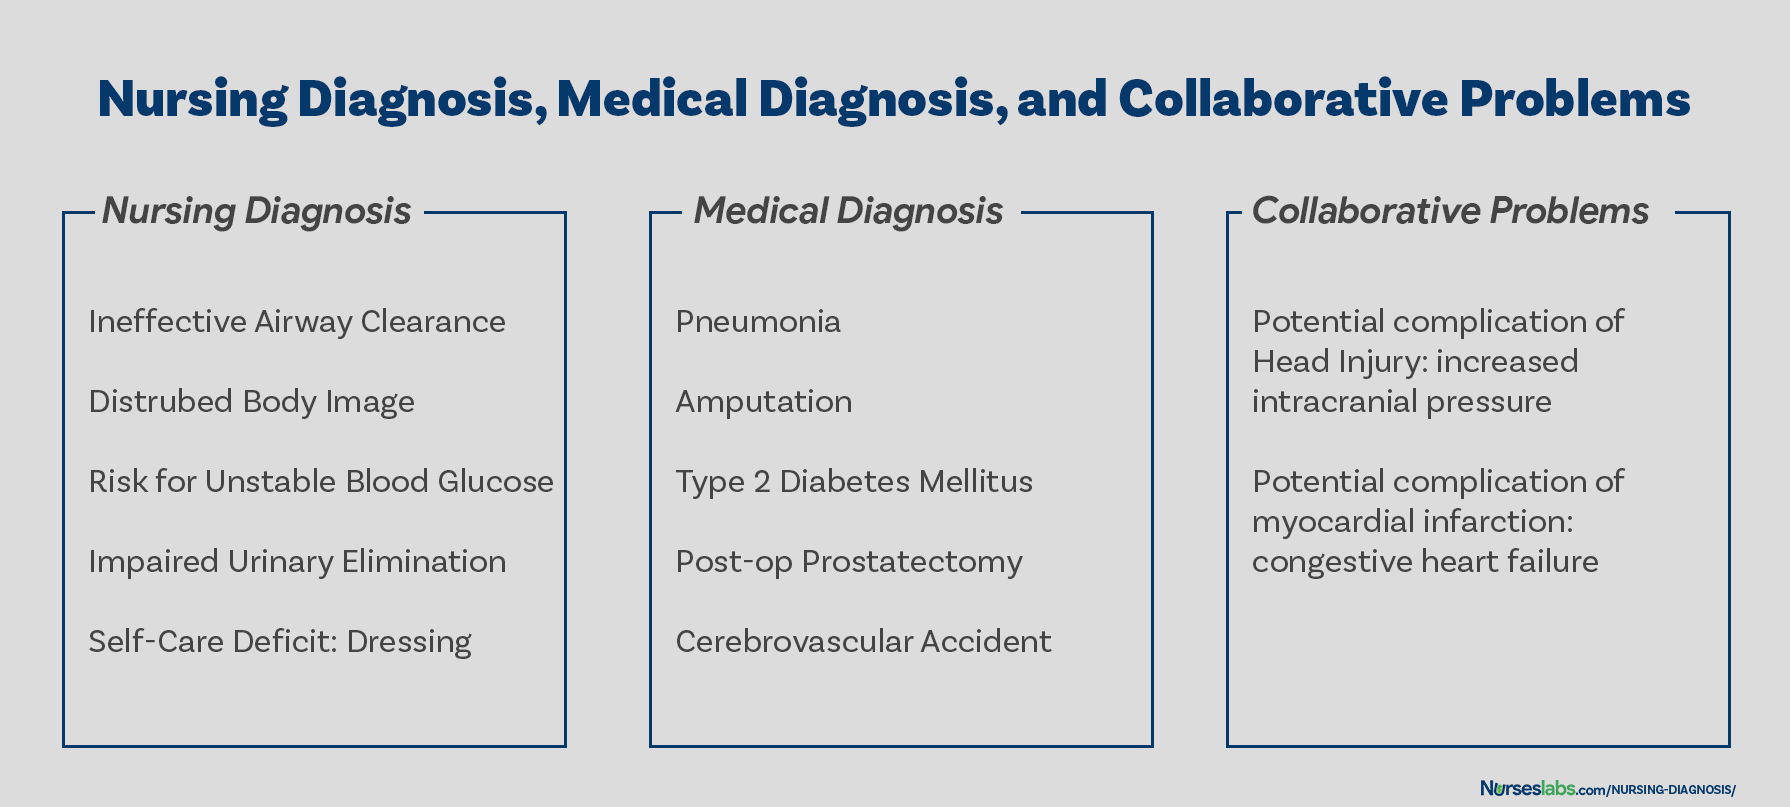 Comparison of Nursing and Medical Diagnoses